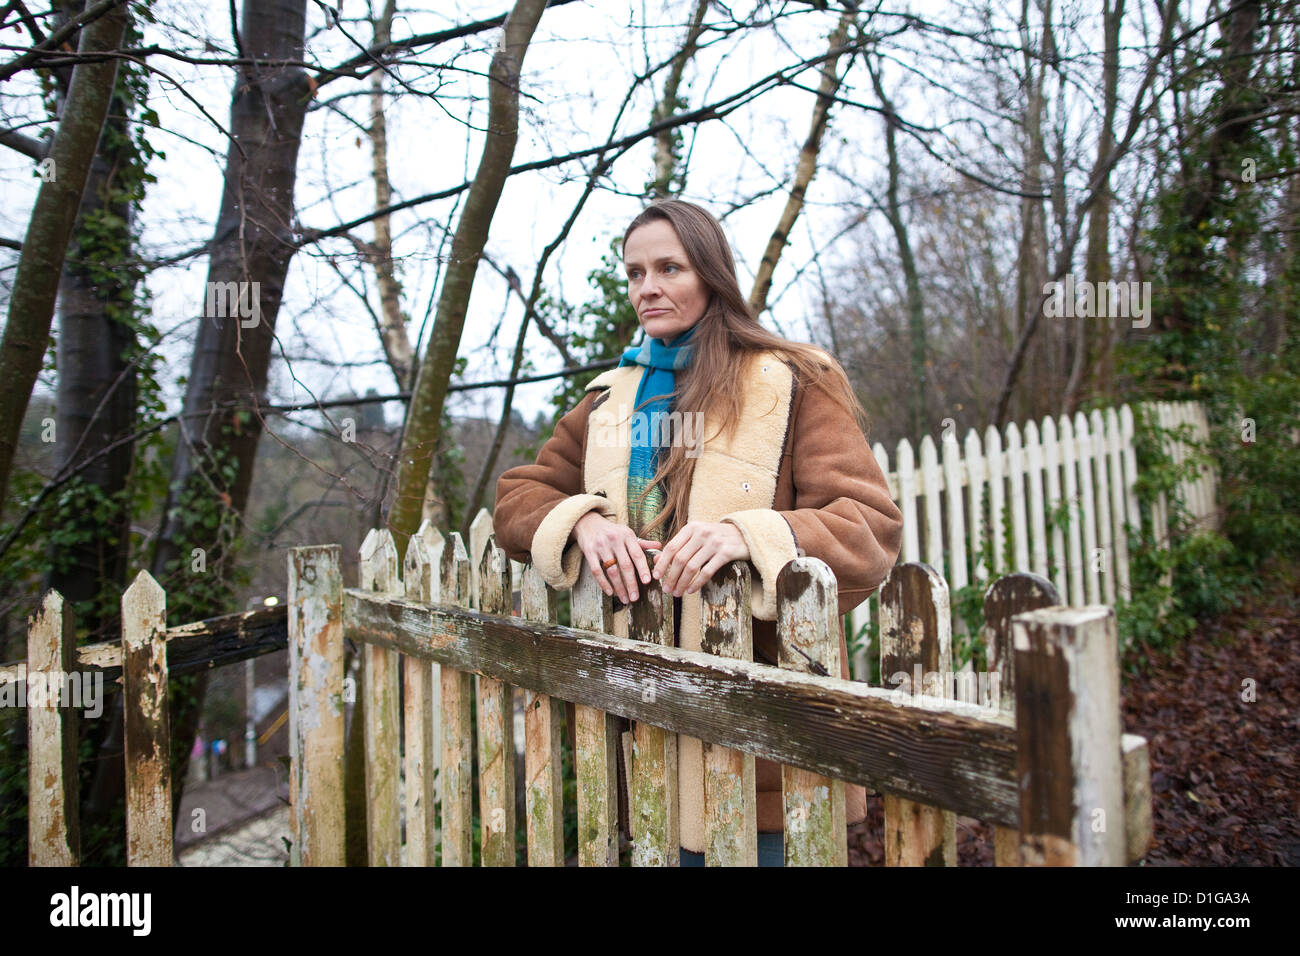 Vanessa Vine, 'No Fracking in Sussex' campaigner, photographed in Balcombe near the fracking site in Home - Stock Image